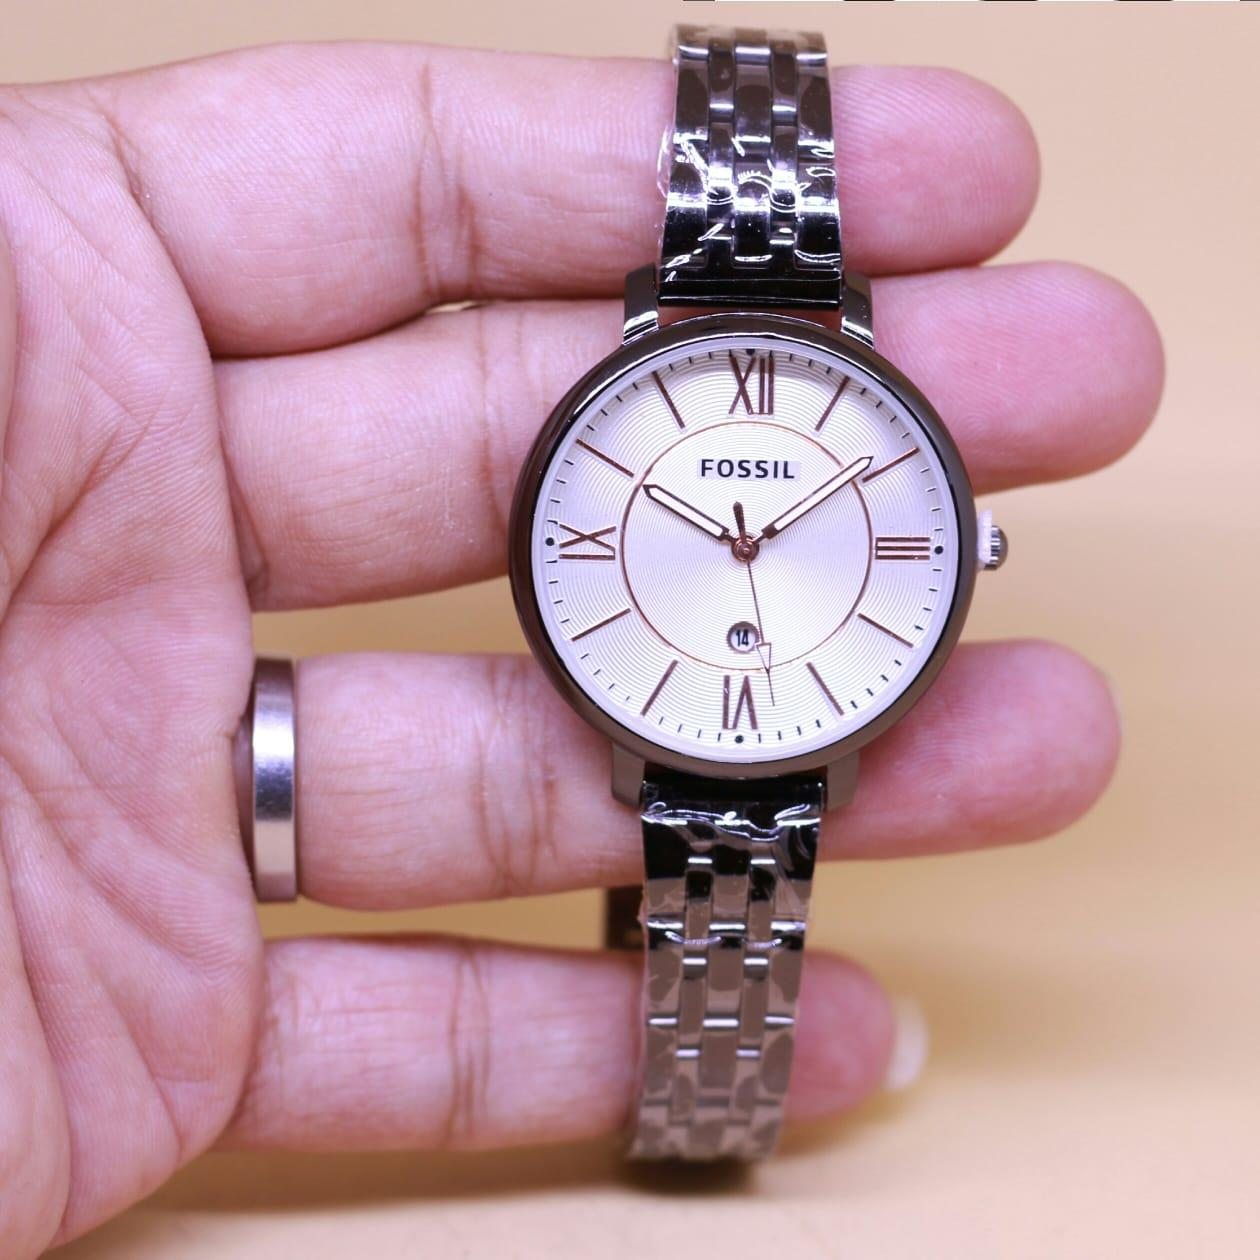 Jam Tangan Tetonis Wanita Gc Leather Model Formal Rantai Stainlessn Steel Tanggal Aktif Huruf Romawi